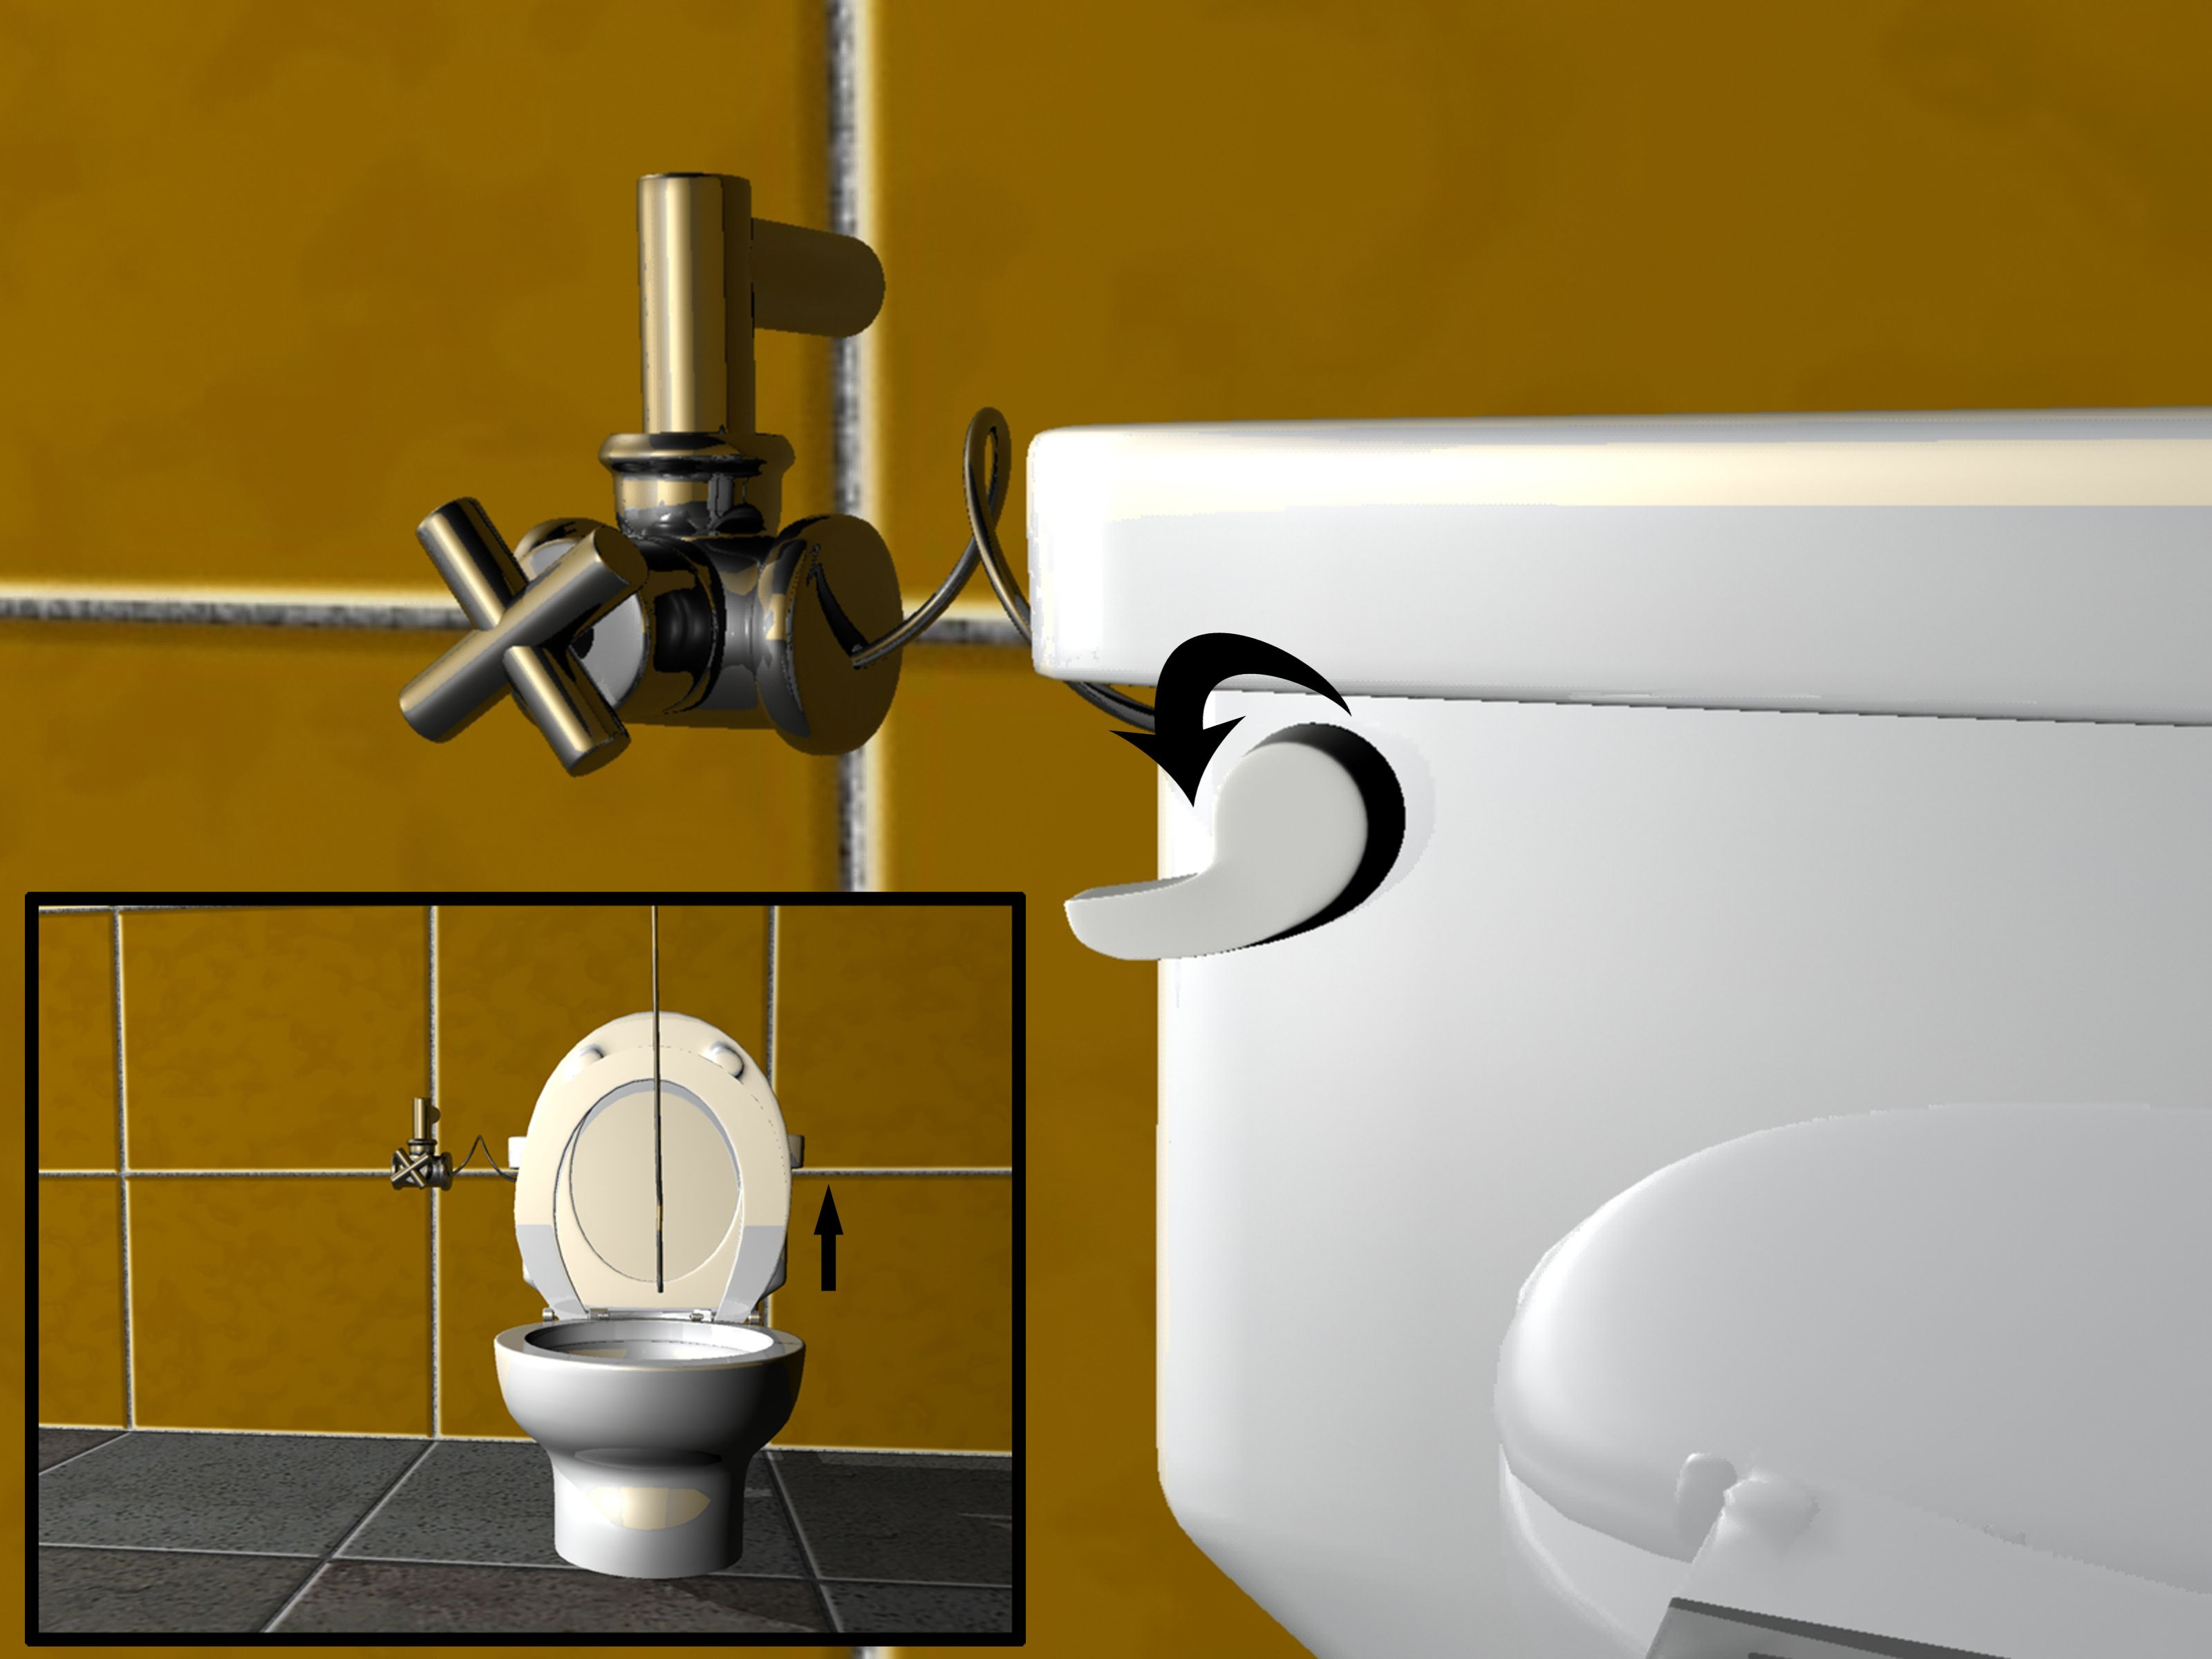 How to unclog a toilet without a plunger how to unclog